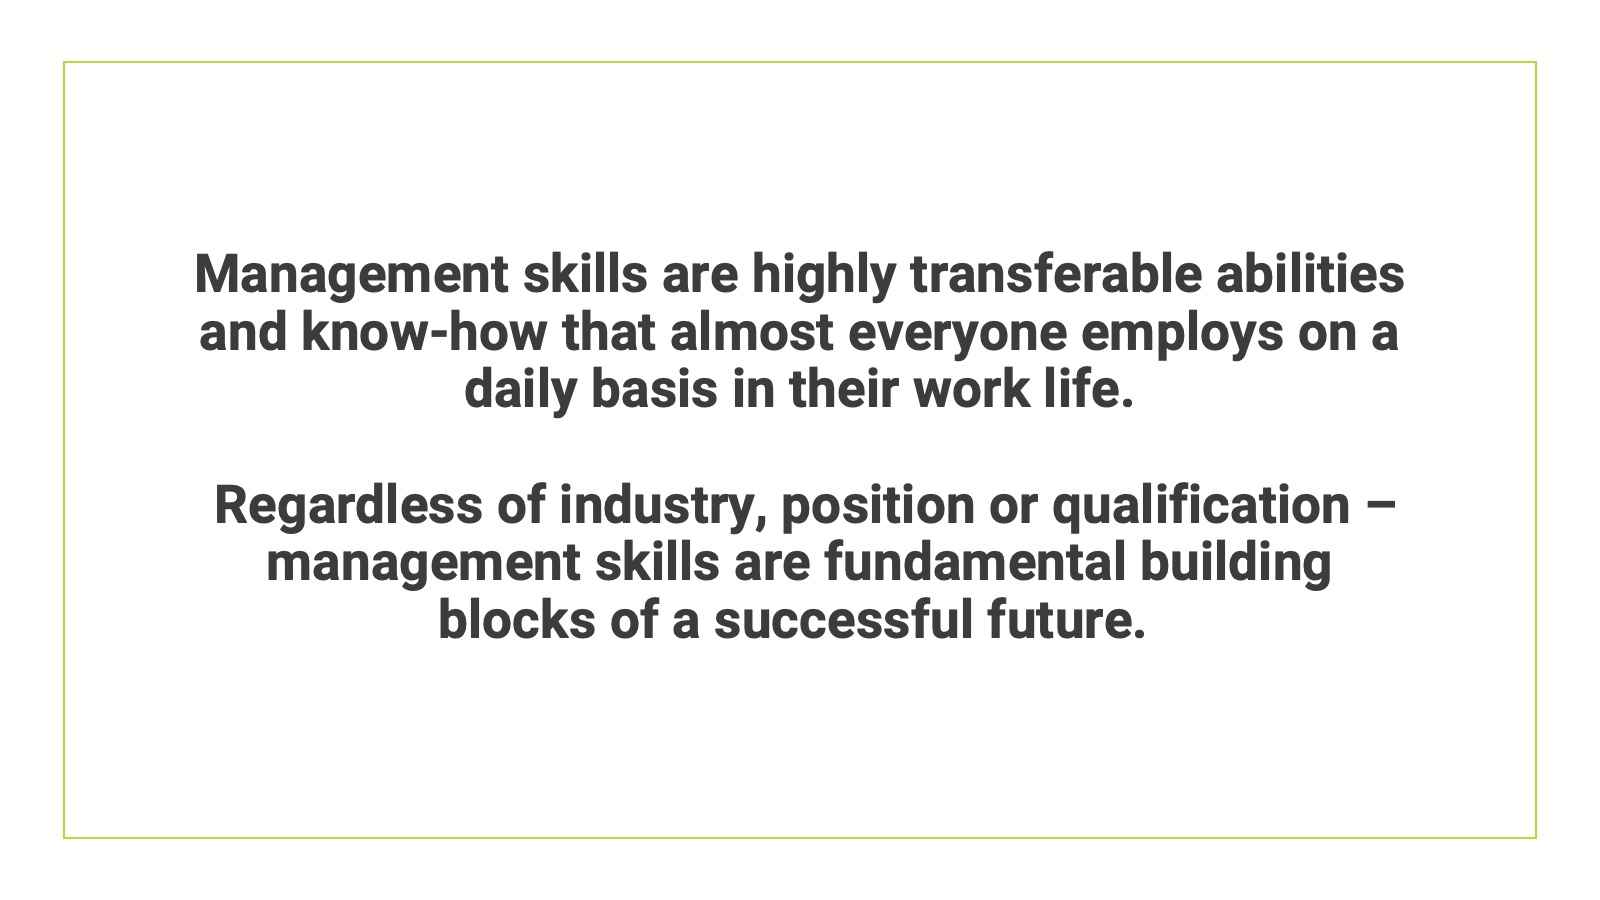 Management skills are fundamental building blocks of a successful future